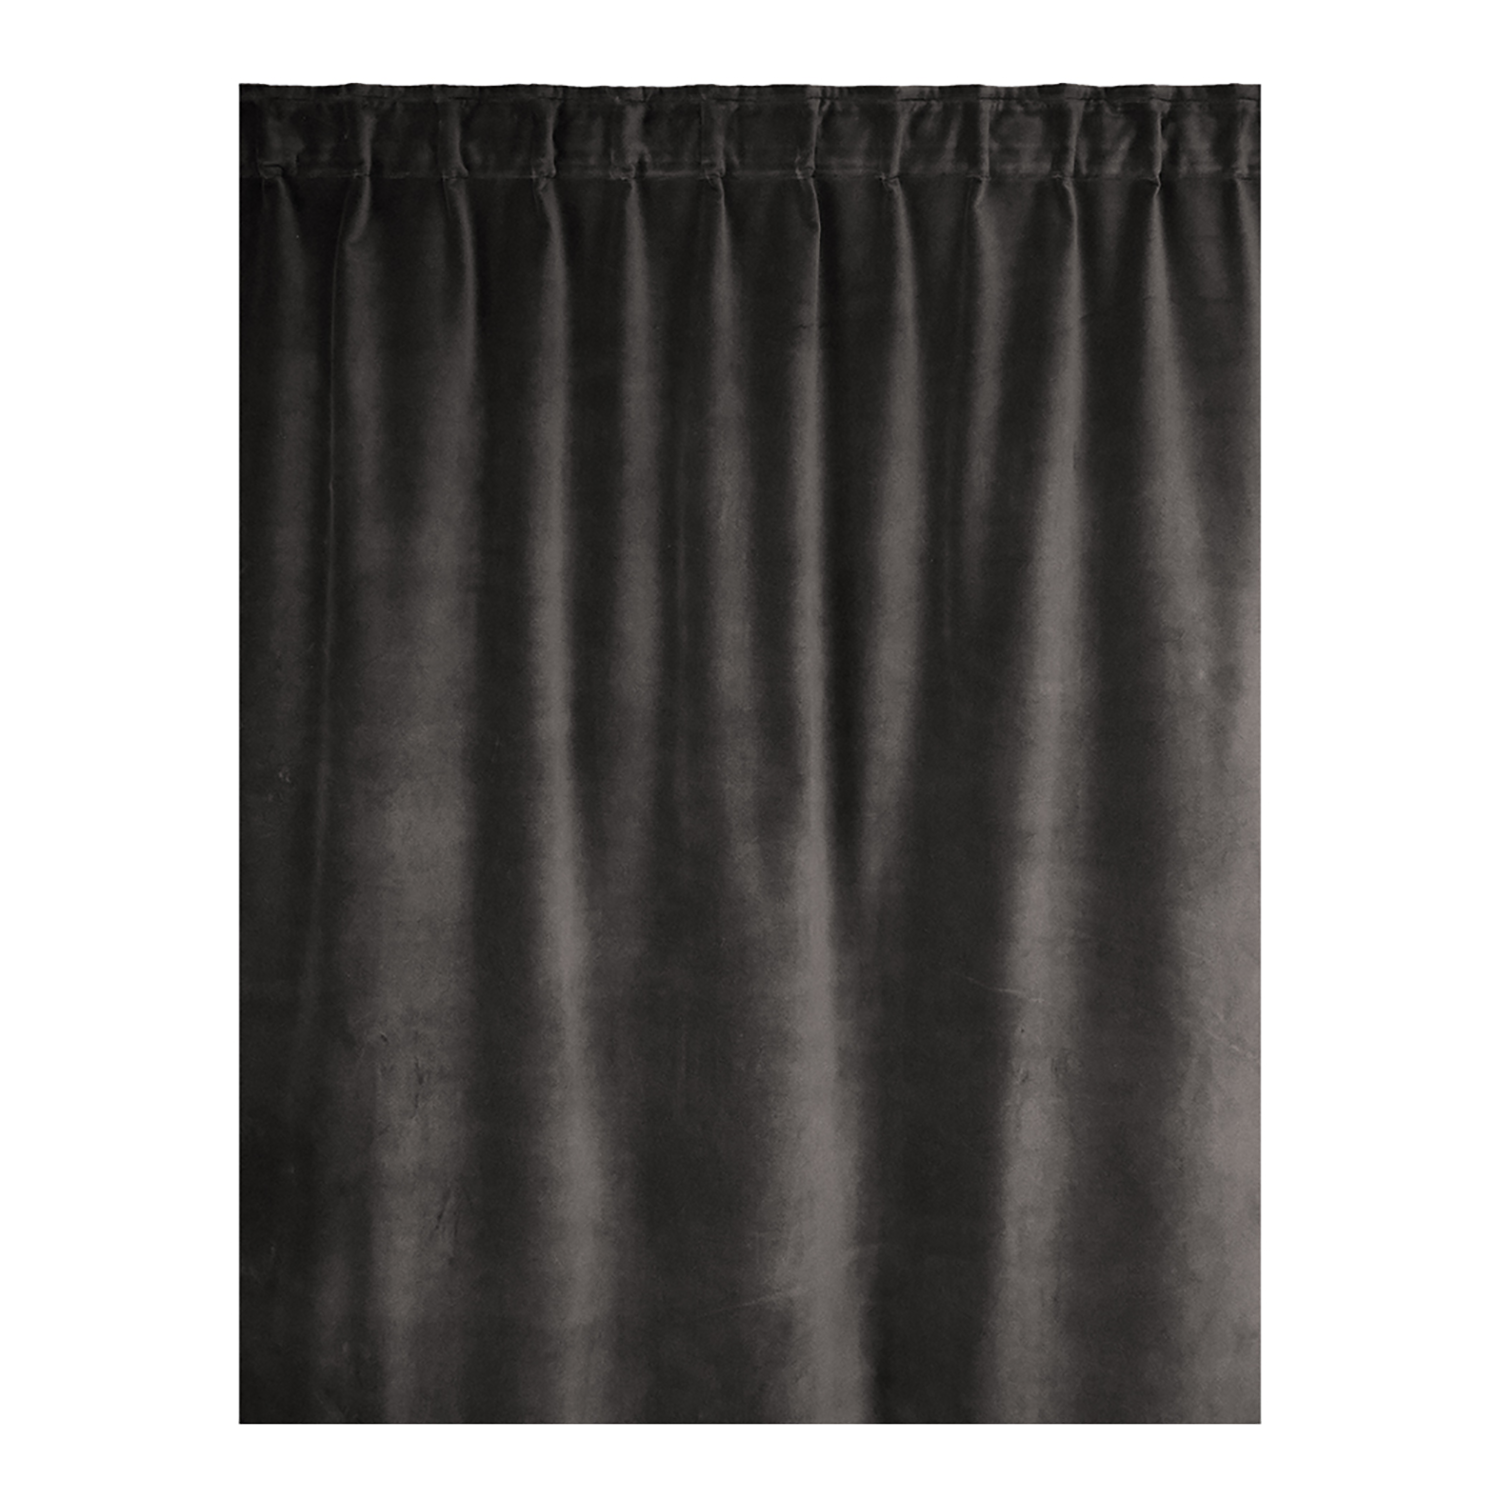 Paolo Curtain Pleat Band 135x290 cm, Dark Charcoal Grey, Linum